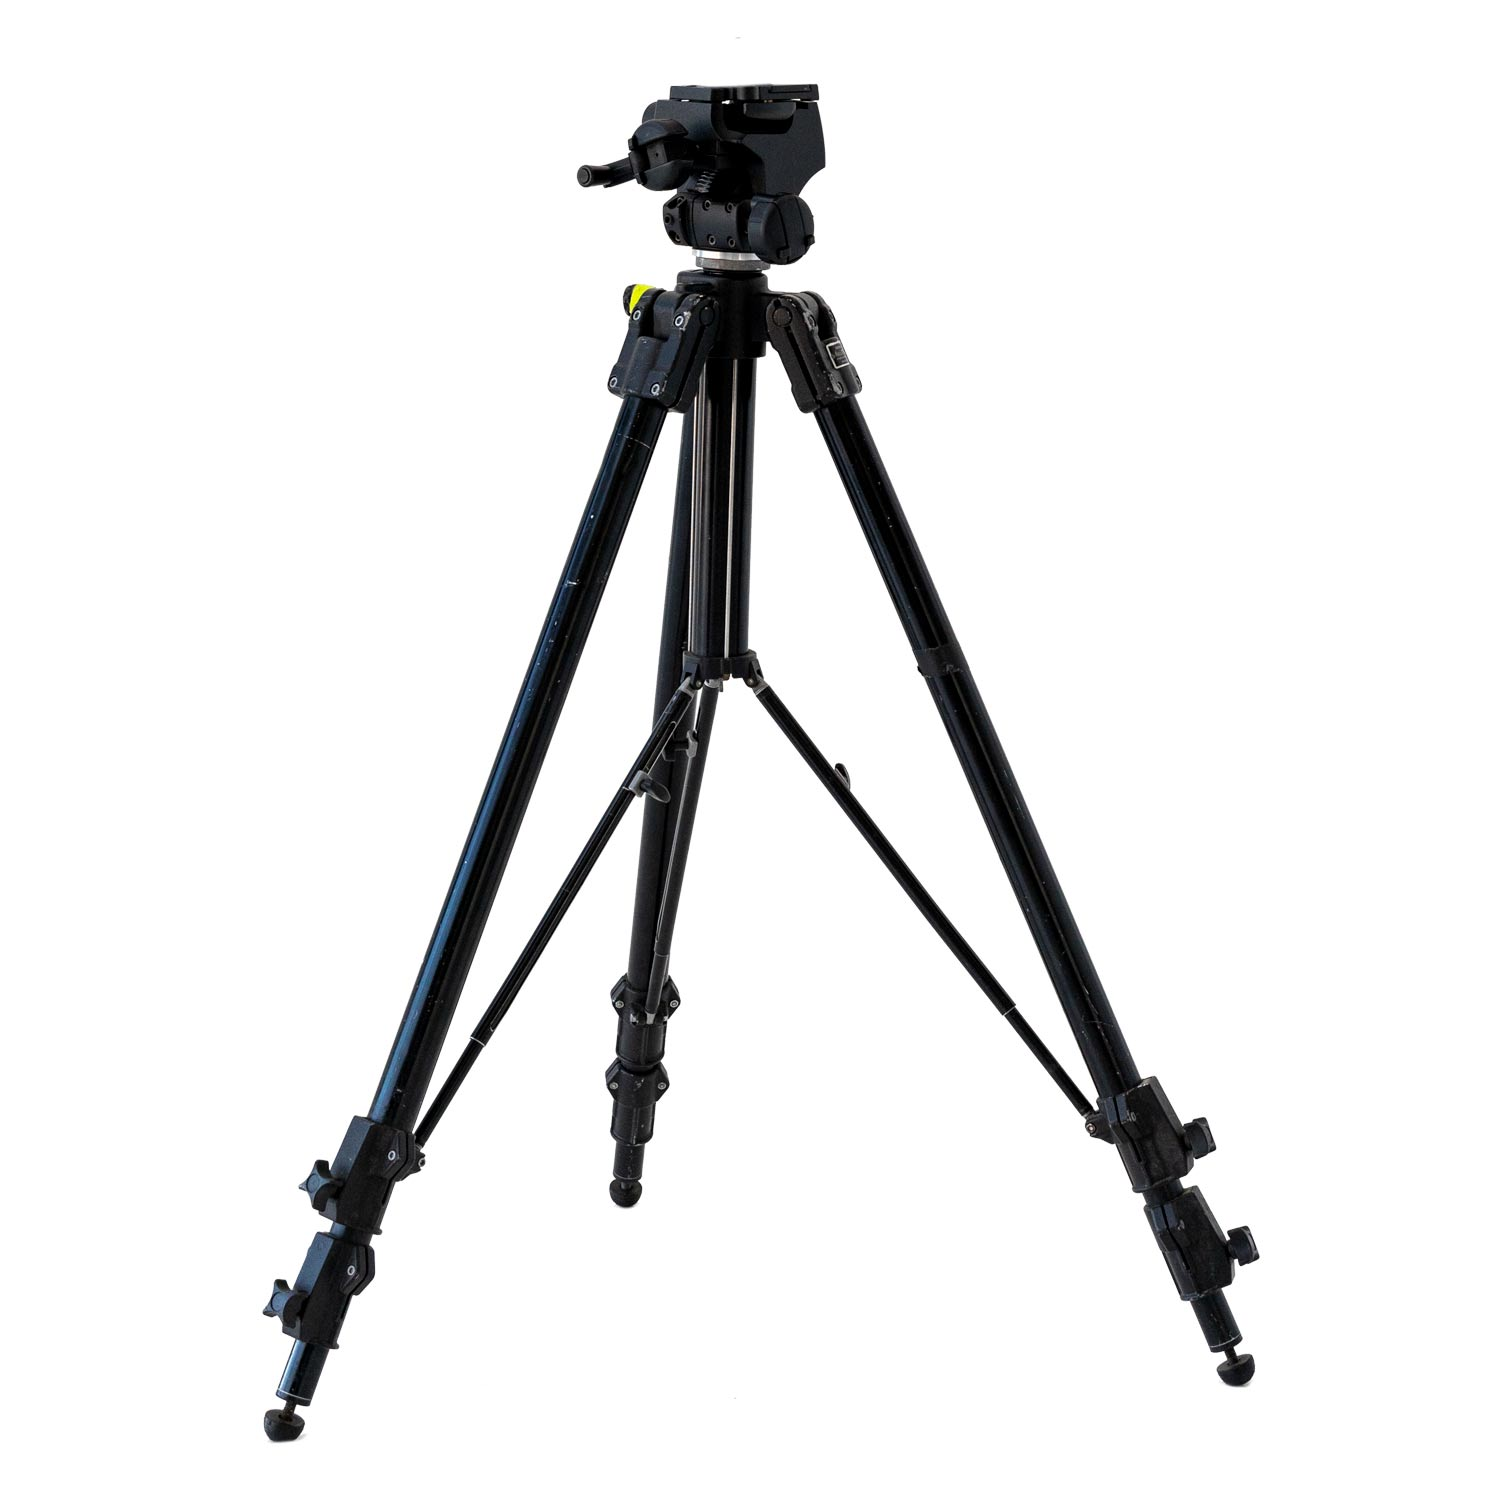 Manfrotto large tripod rentals Queenstown